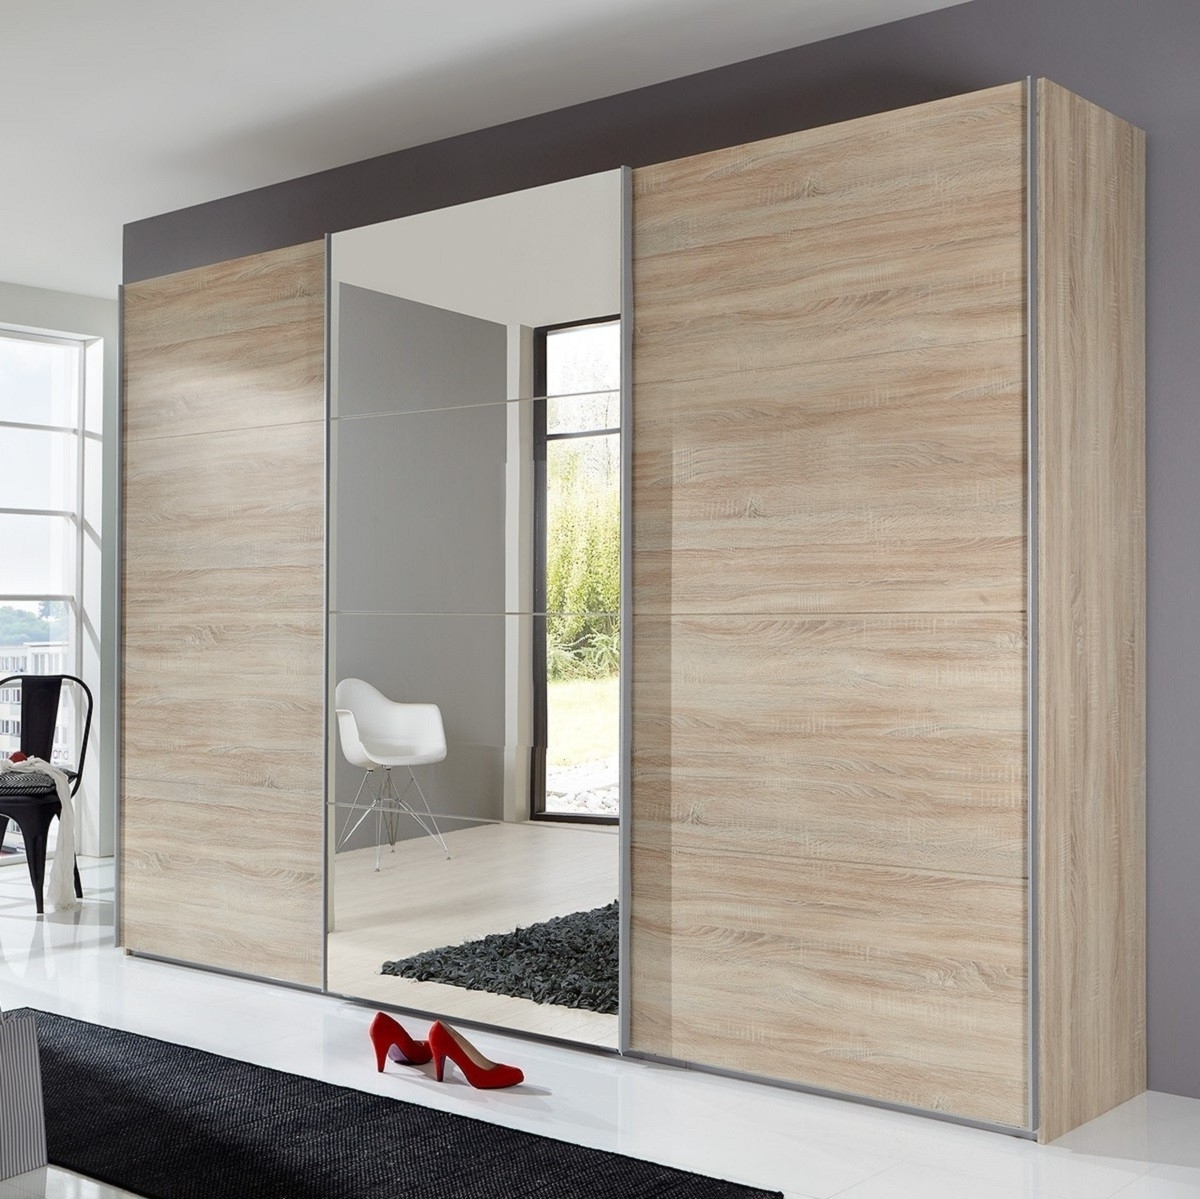 Oak Mirrored Wardrobes With Regard To Trendy Sliding Wardrobe Doors Oak Mirror • Sliding Doors Design (View 4 of 15)